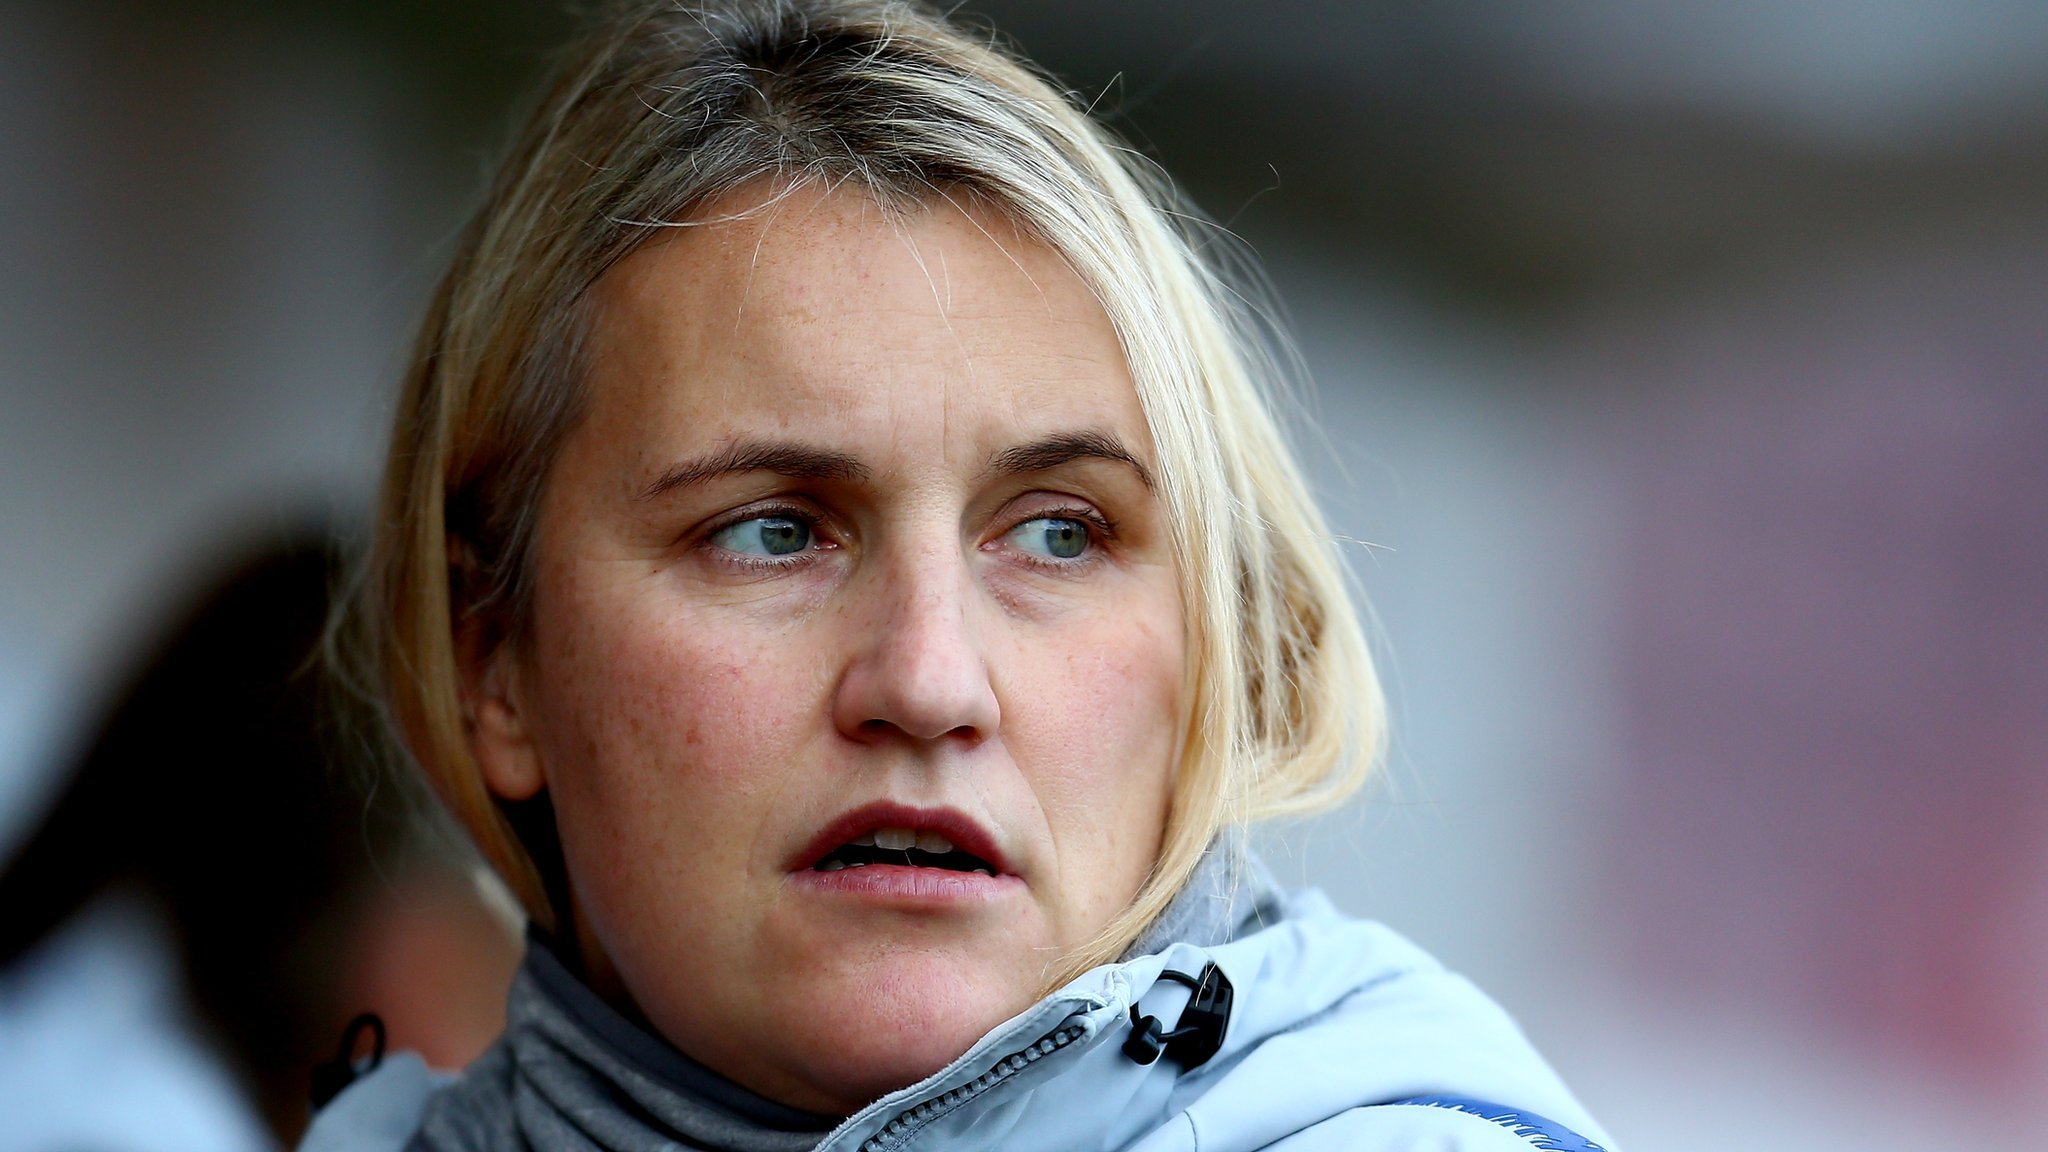 Women's Super League: Emma Hayes says Barclays sponsorship is 'watershed moment'